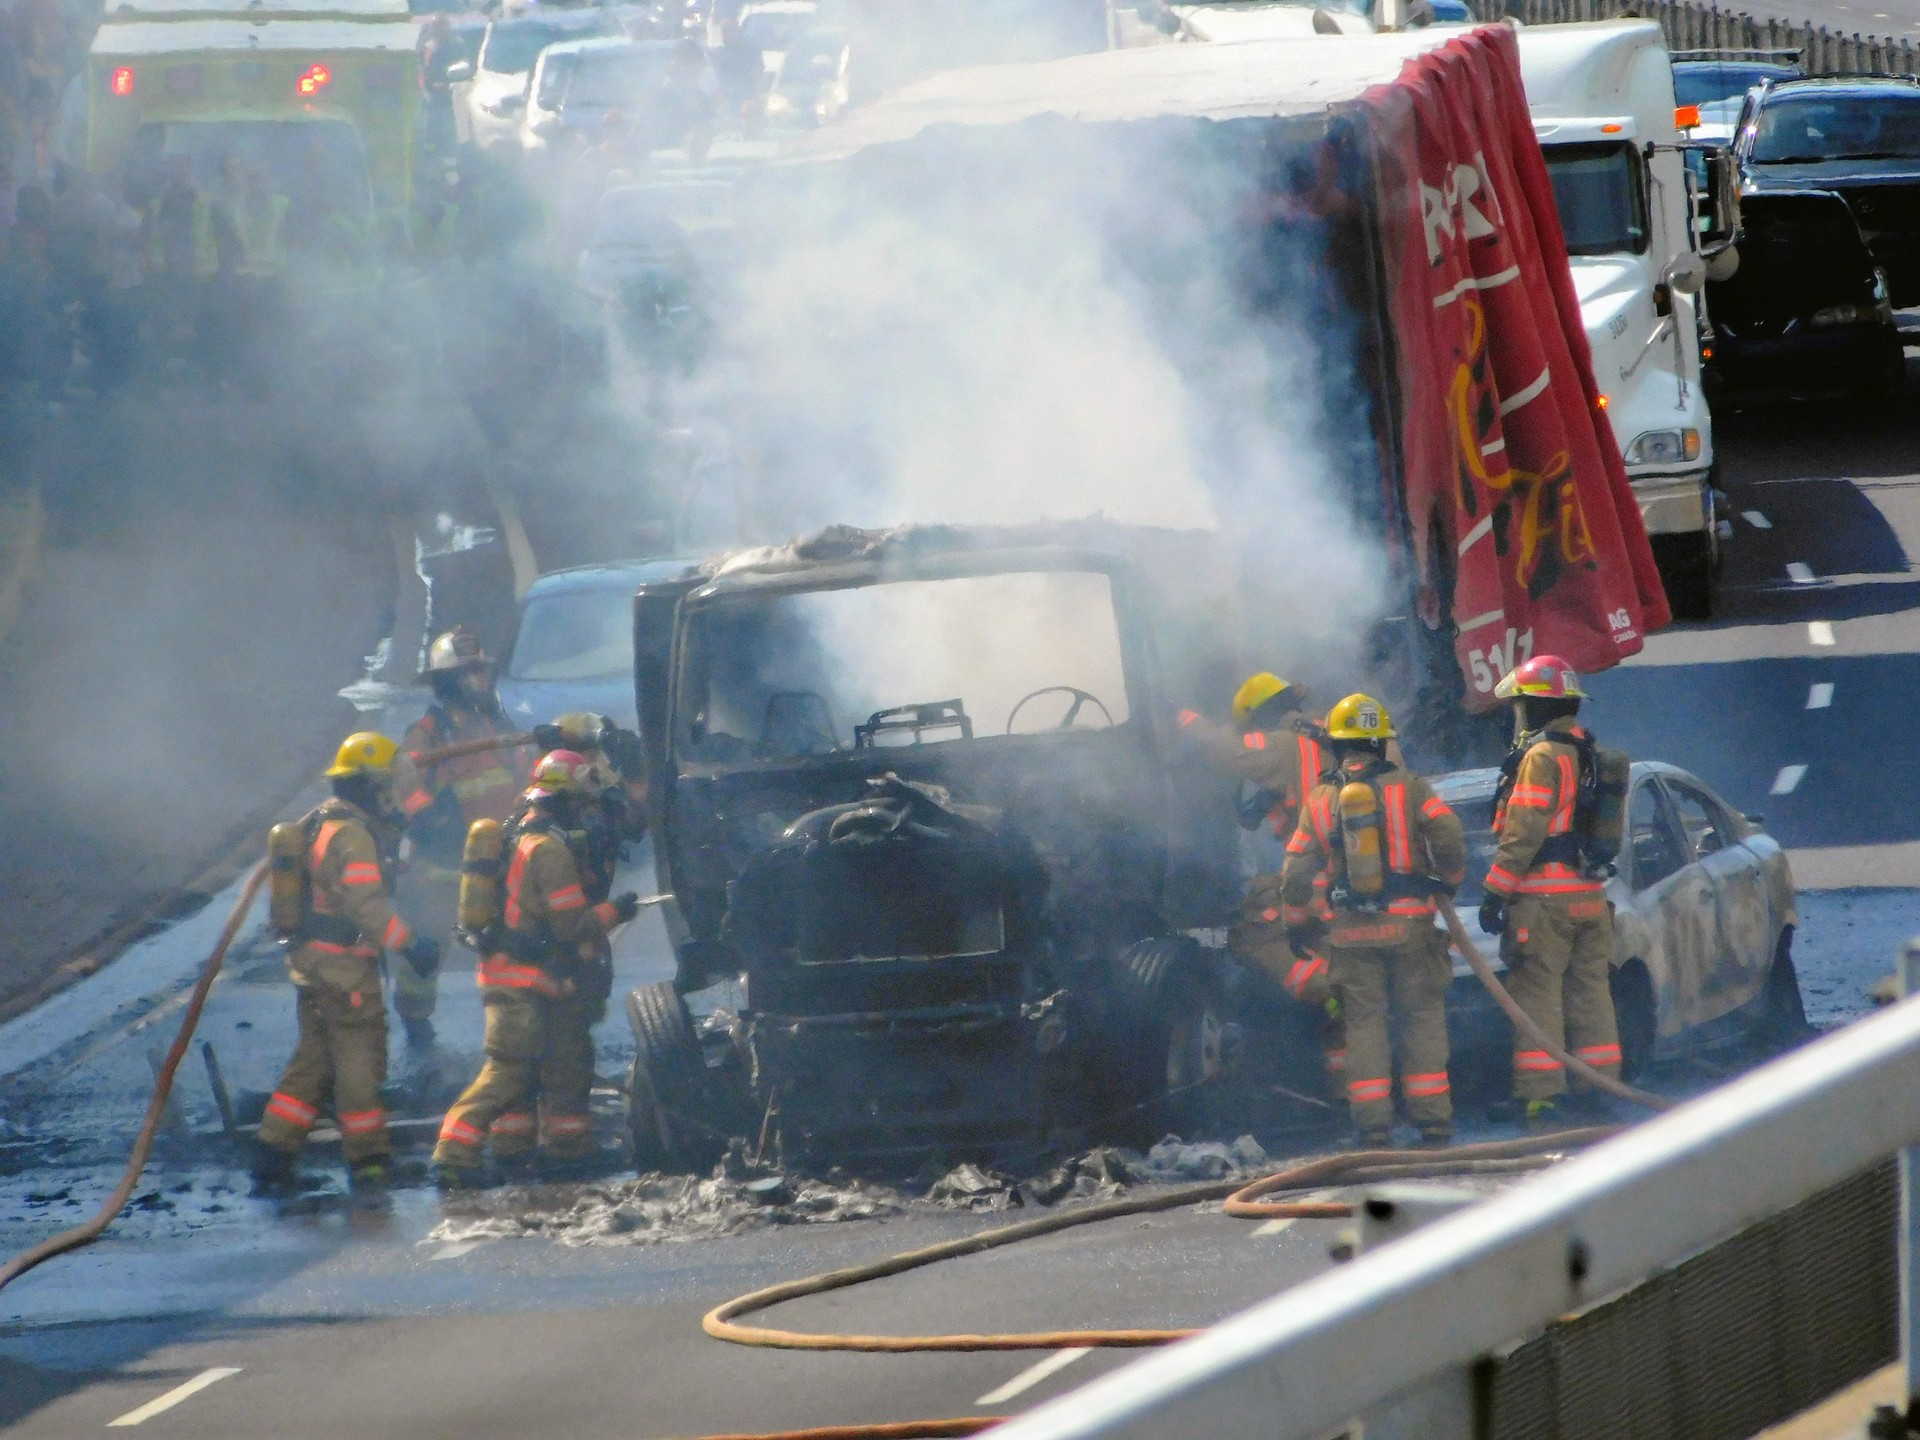 Burnt truck | rick.cognyl.fournier, accident, hose, people